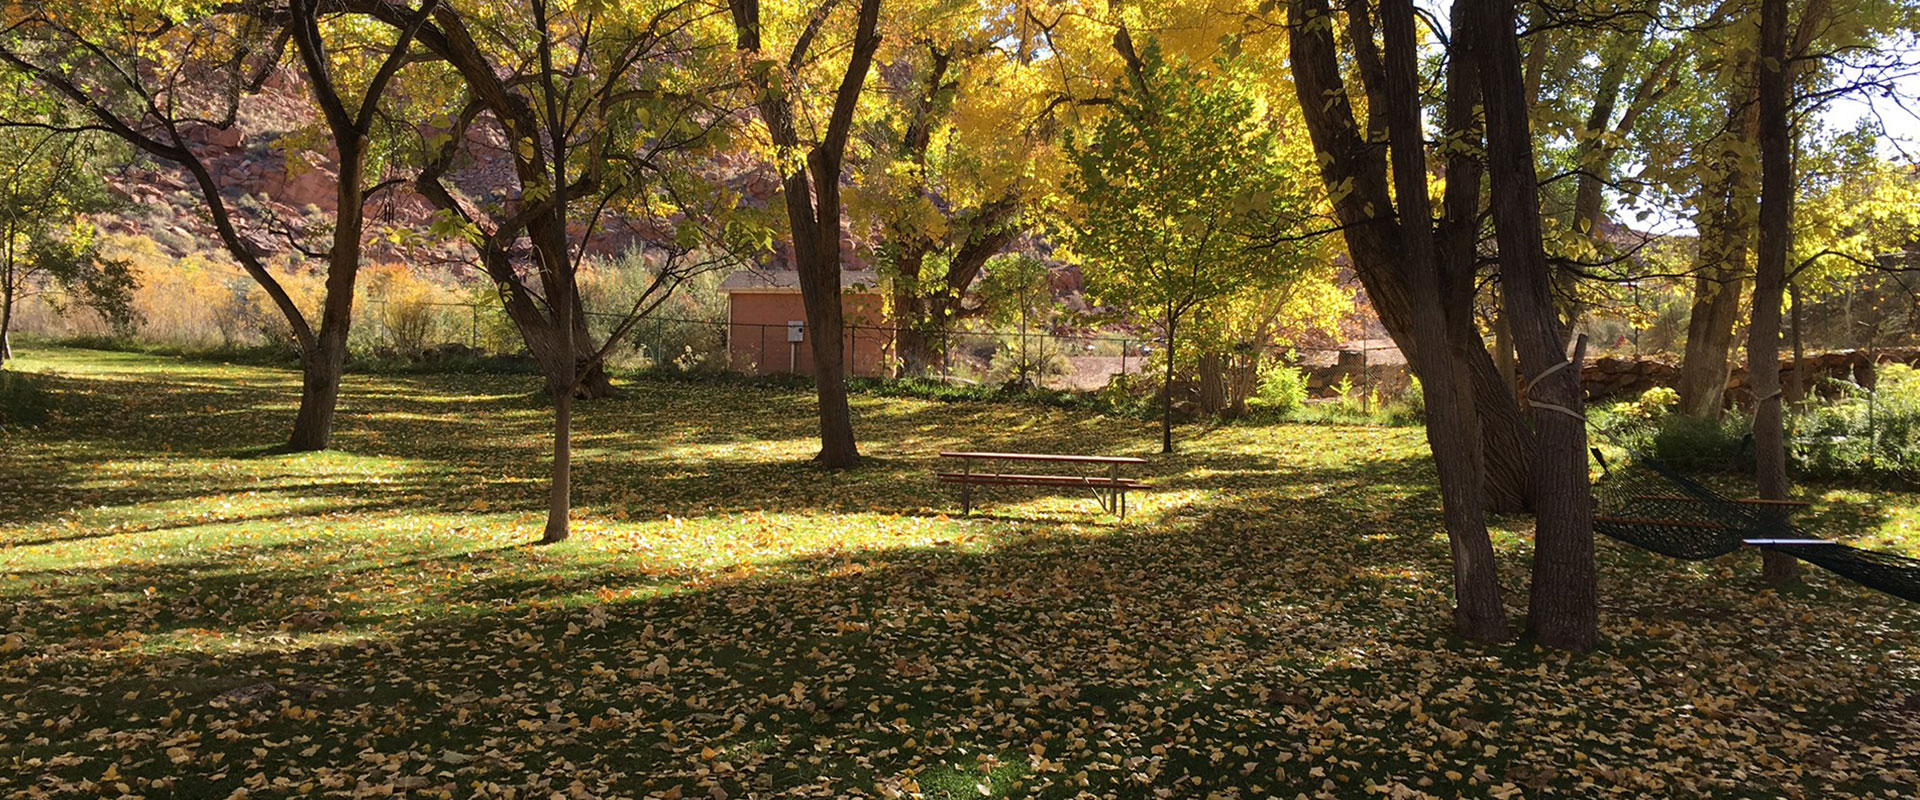 The National Historic Register House on the Moab Springs Ranch property is a two storey brick building surrounded by towering vibrant cottonwood trees.